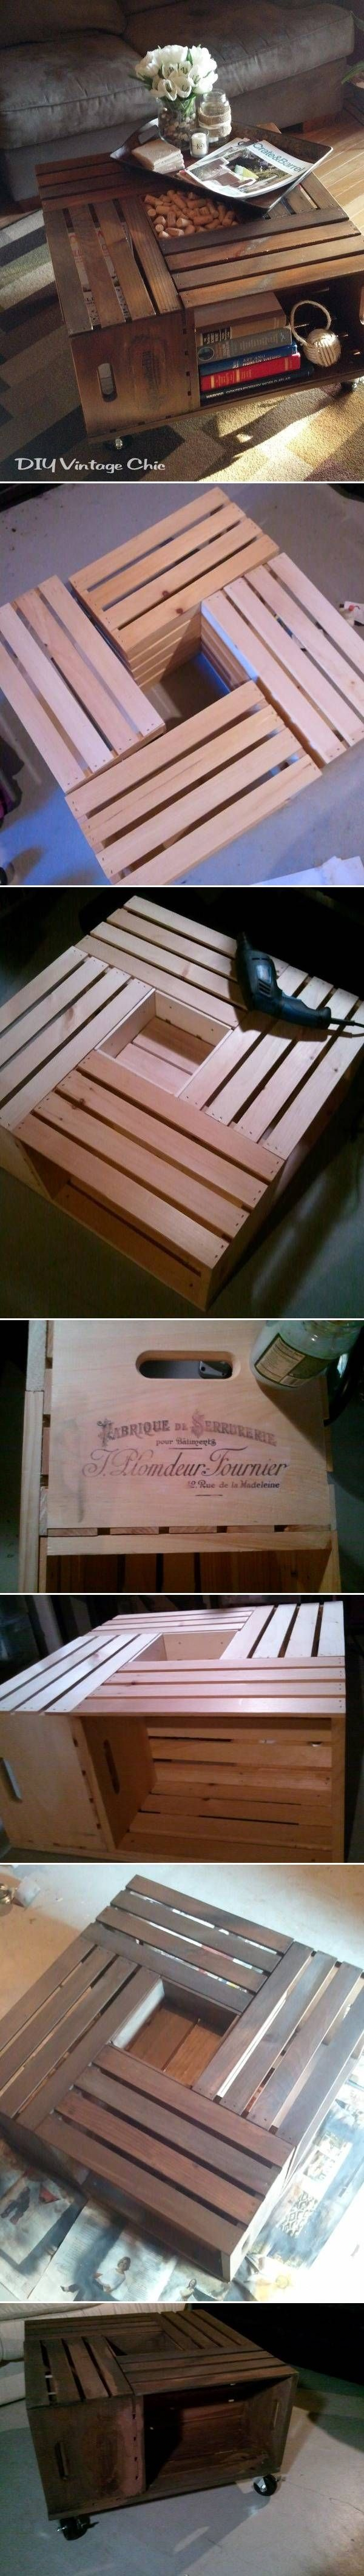 DIY Crate Table - So cool!